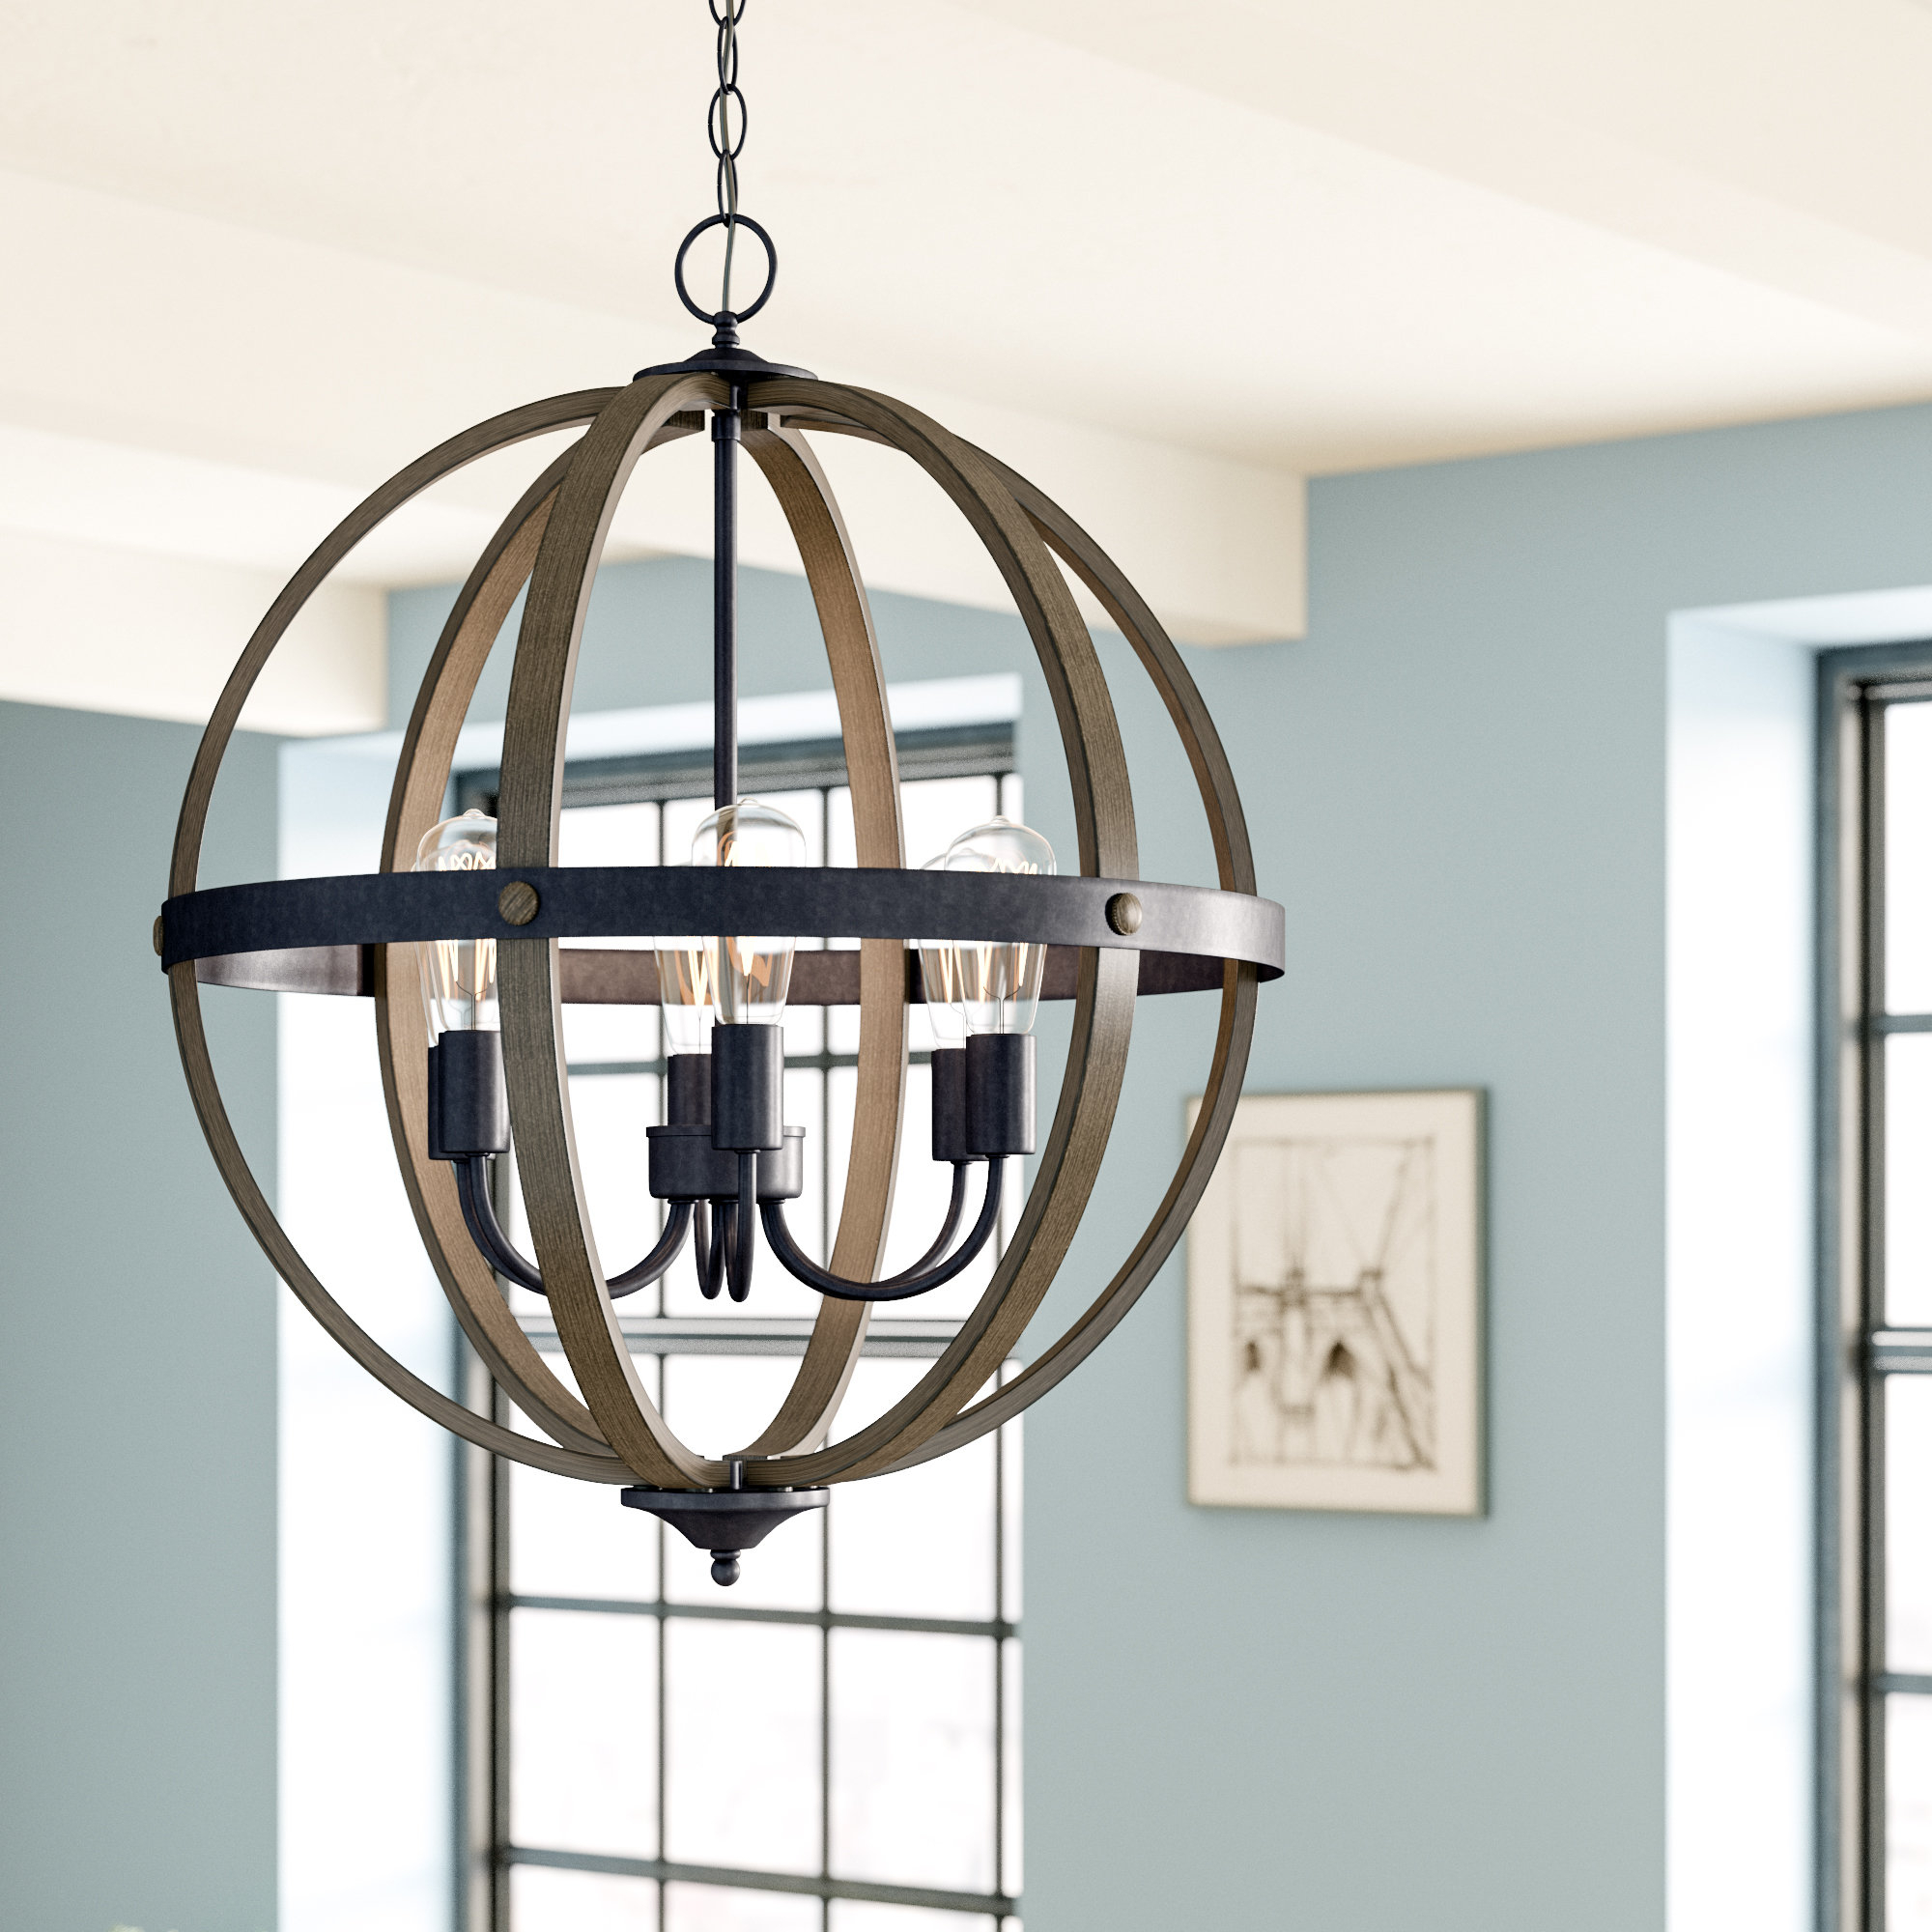 [%Globe Chandeliers Sale – Up To 65% Off Until September 30Th Intended For Favorite Ricciardo 4 Light Globe Chandeliers|Ricciardo 4 Light Globe Chandeliers Inside Well Known Globe Chandeliers Sale – Up To 65% Off Until September 30Th|Recent Ricciardo 4 Light Globe Chandeliers Pertaining To Globe Chandeliers Sale – Up To 65% Off Until September 30Th|Newest Globe Chandeliers Sale – Up To 65% Off Until September 30Th Throughout Ricciardo 4 Light Globe Chandeliers%] (View 15 of 25)